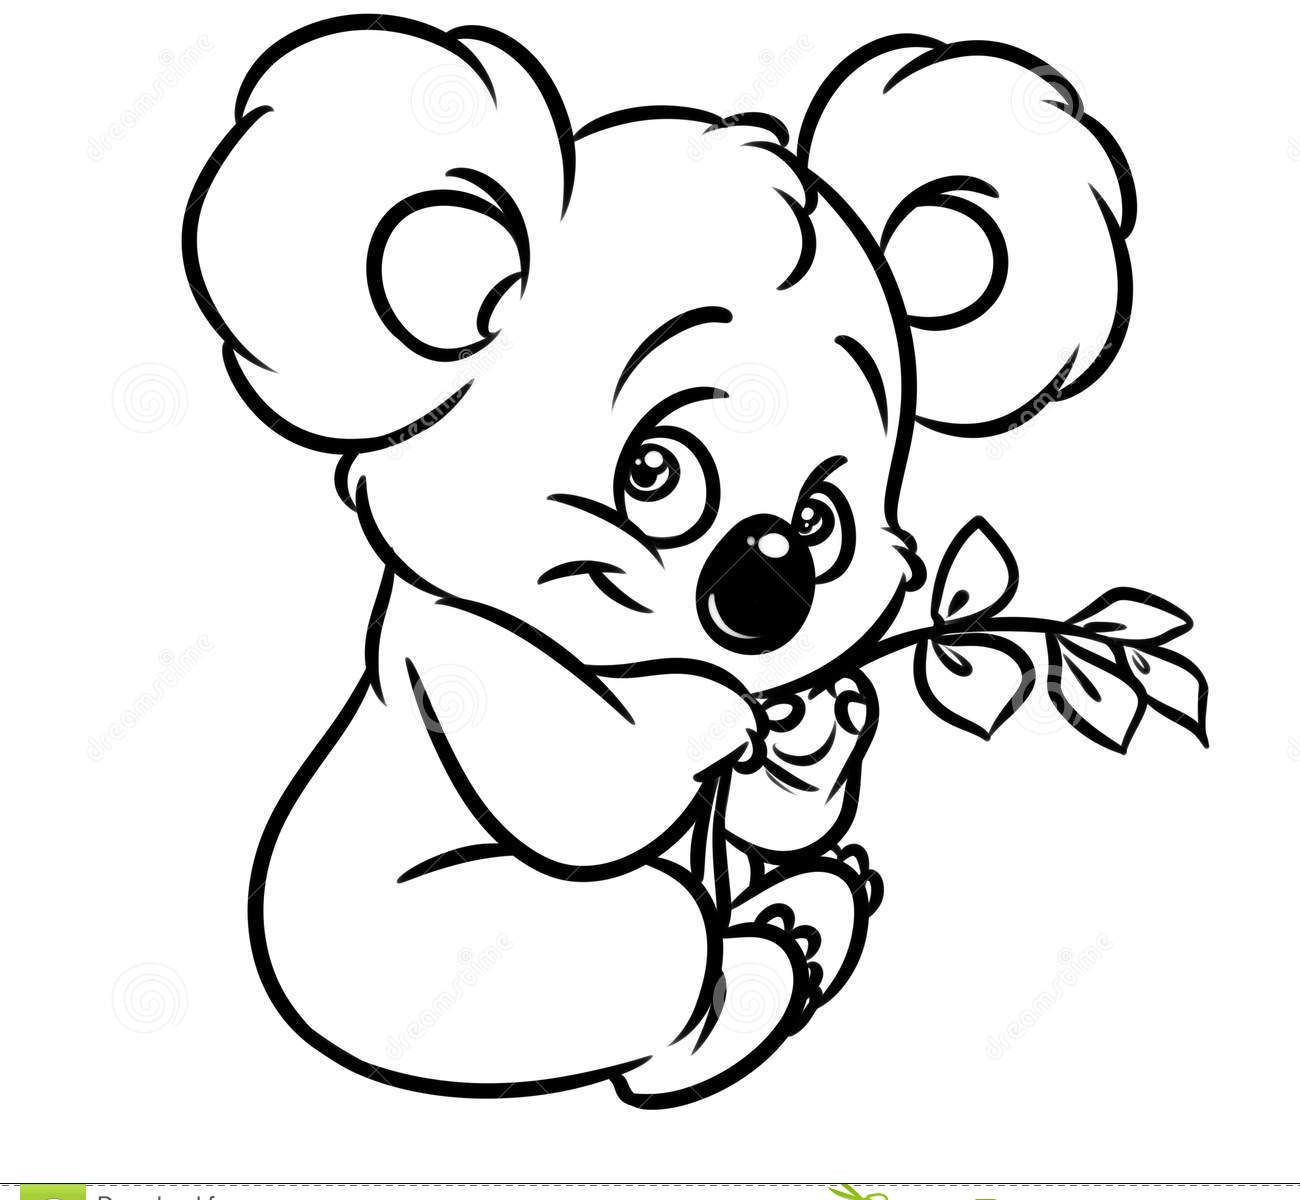 coloring page koala free printable koala coloring pages for kids animal place coloring page koala